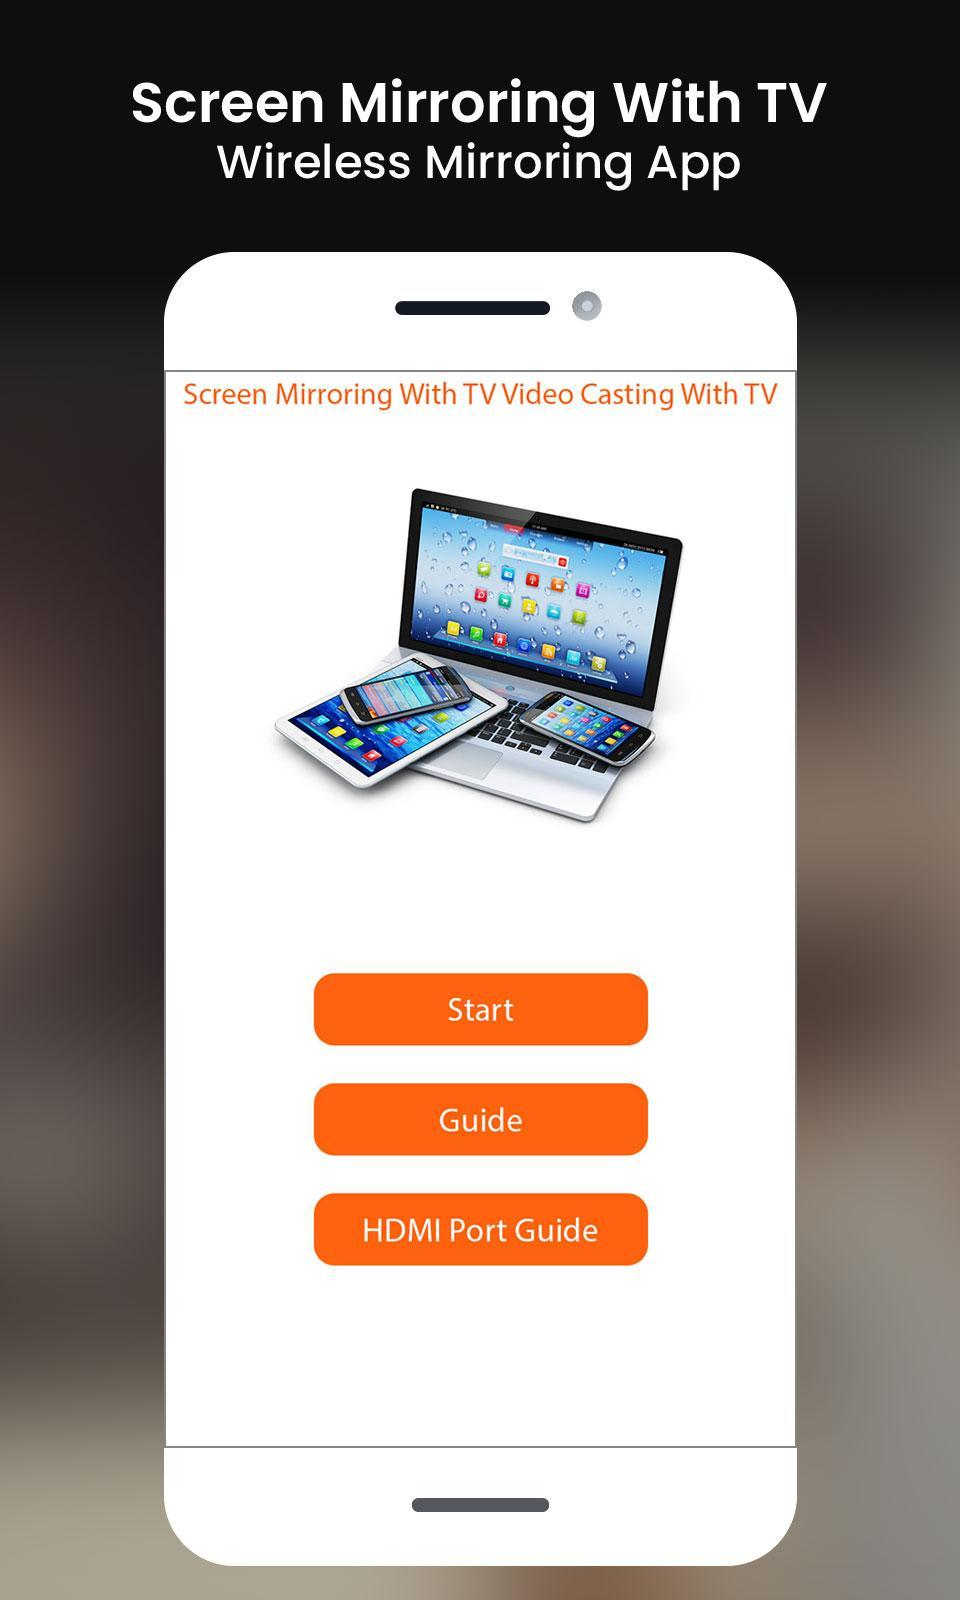 Screen Mirroring With TV Wireless Mirroring App for Android